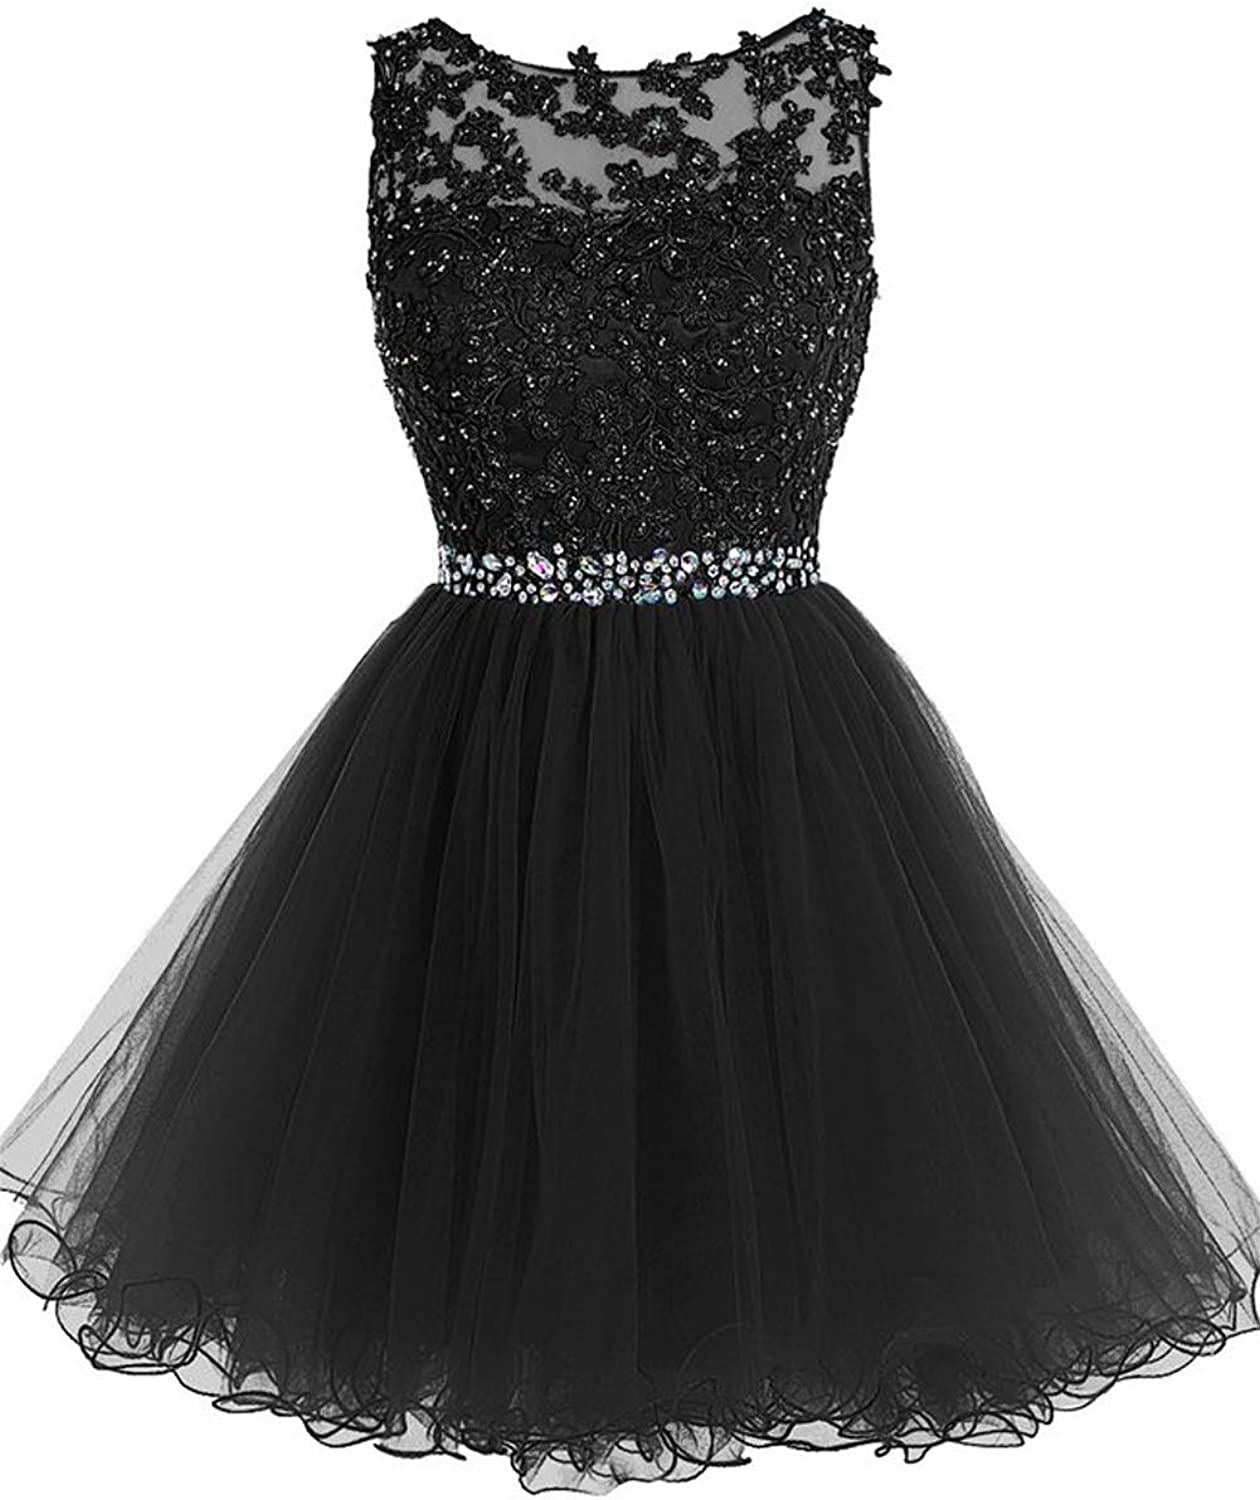 Cdress Beaded Applique Short Prom Homecoming Dresses Tulle Party Evening Gowns